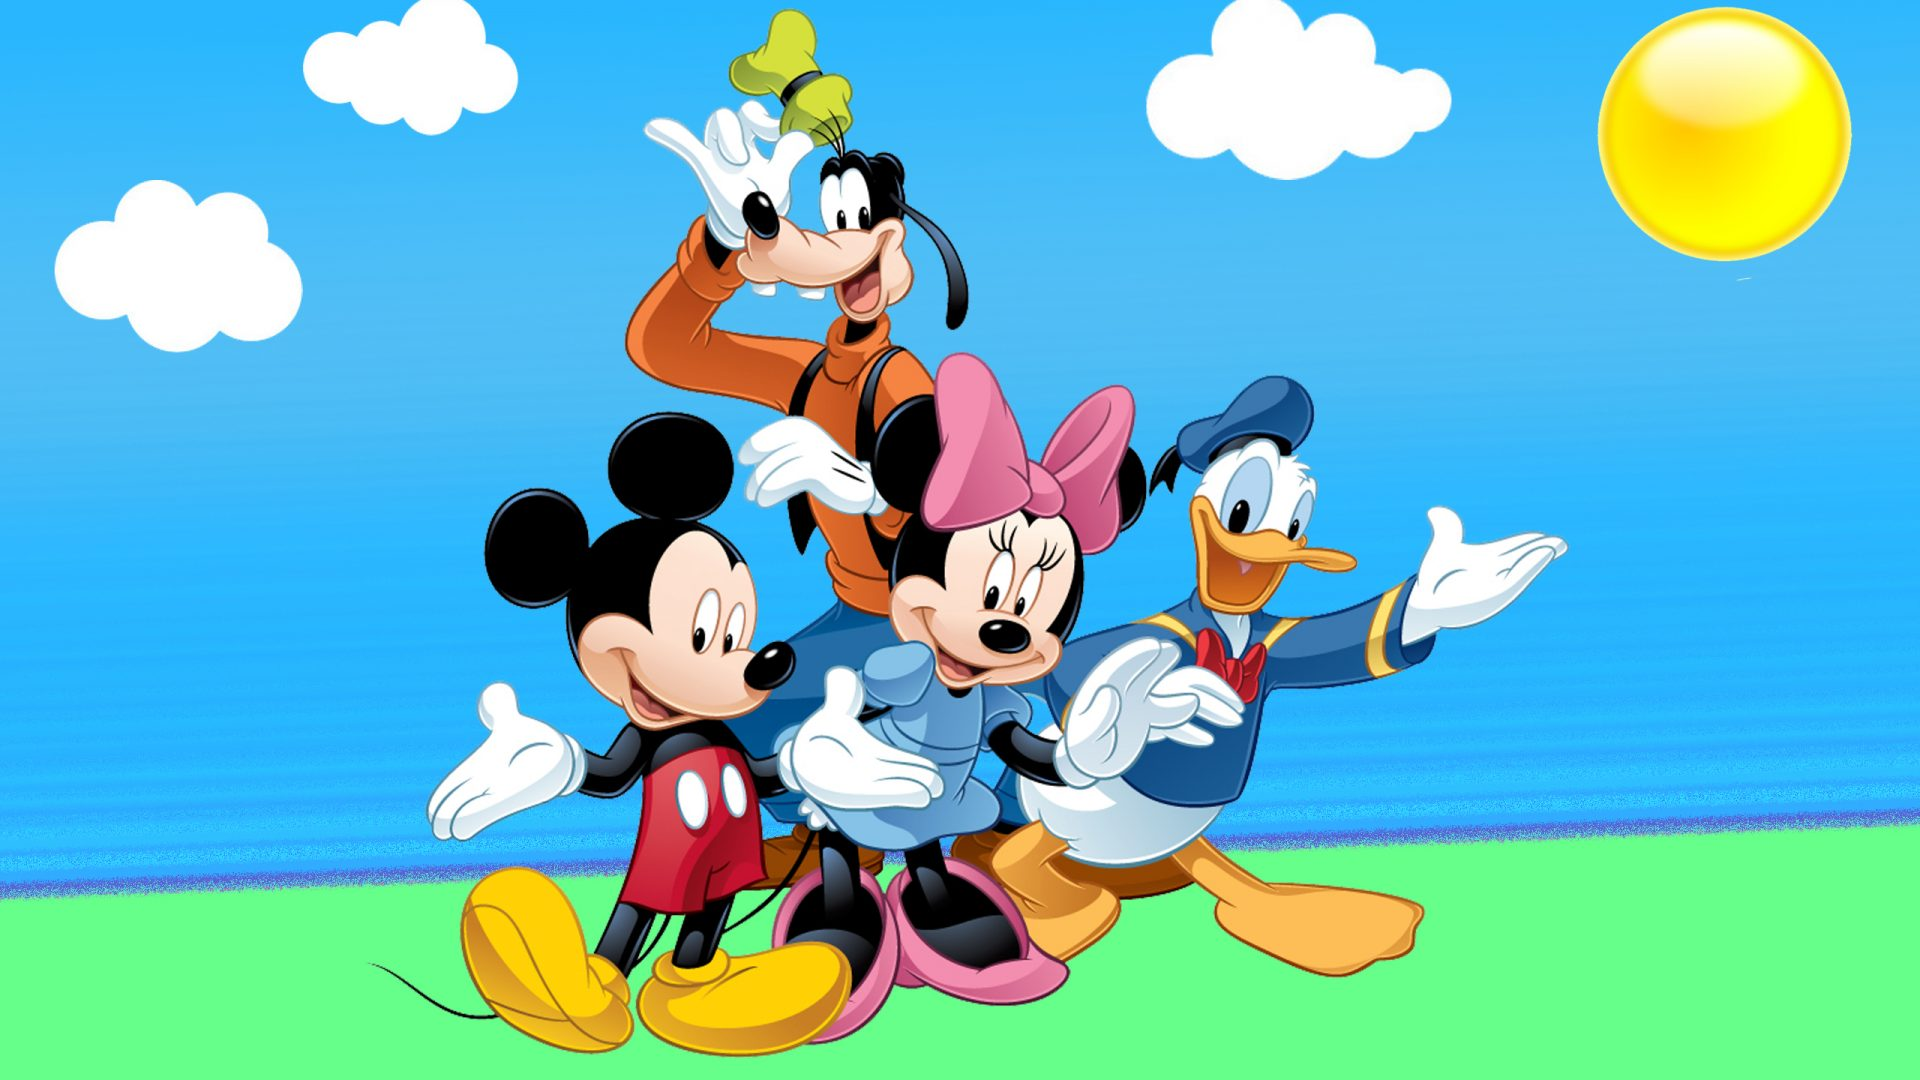 donald-duck-mickey-mouse-and-goofy-cartoon-wallpaper-hd-for-desktop